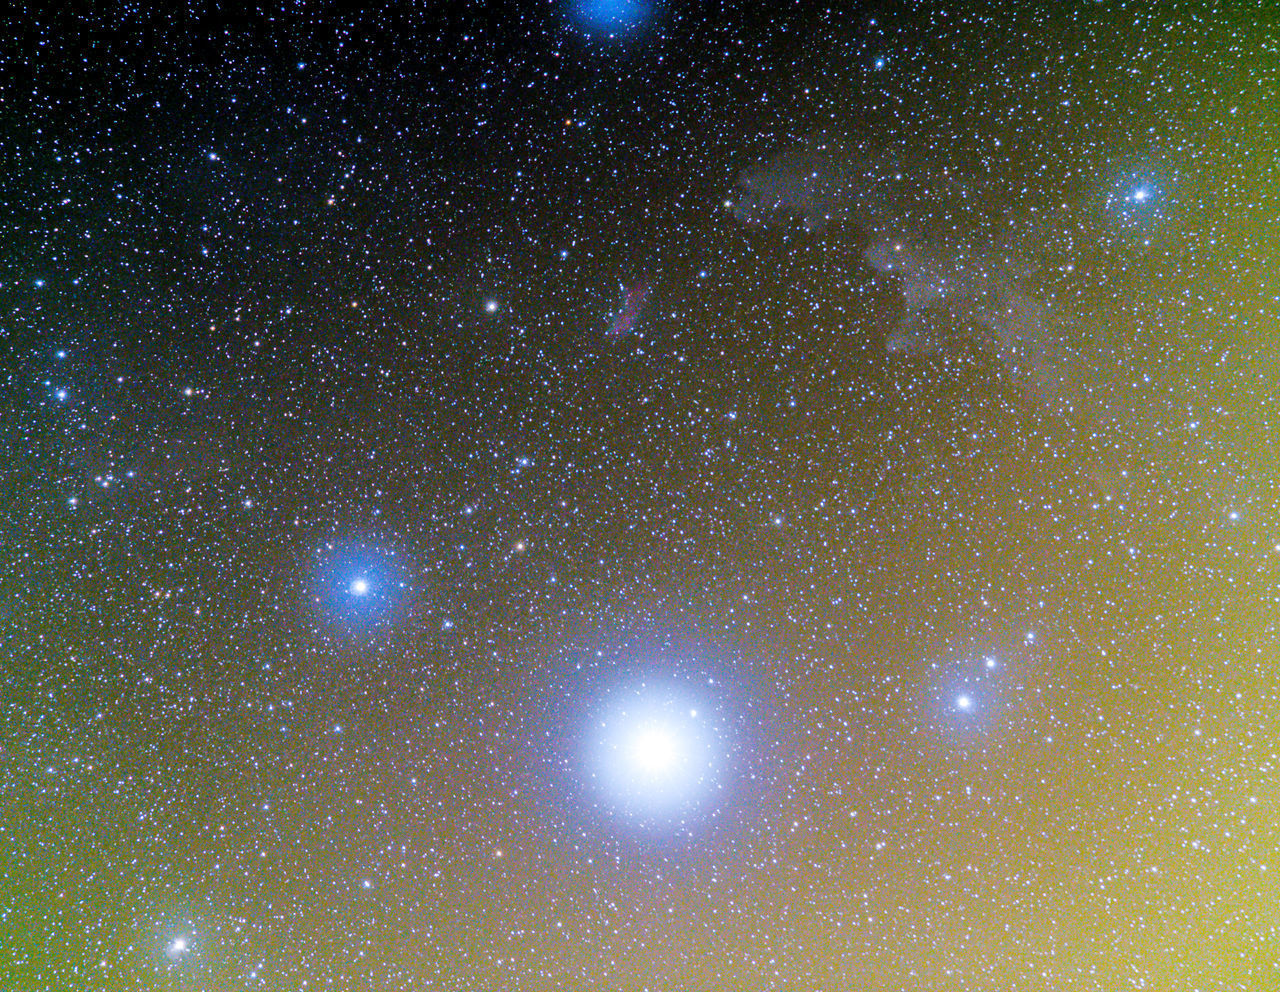 star - space, night, astronomy, sky, space, galaxy, illuminated, nature, no people, beauty in nature, constellation, outdoors, infinity, space exploration, globular star cluster, scenics - nature, low angle view, tranquility, glowing, milky way, luminosity, bright, space and astronomy